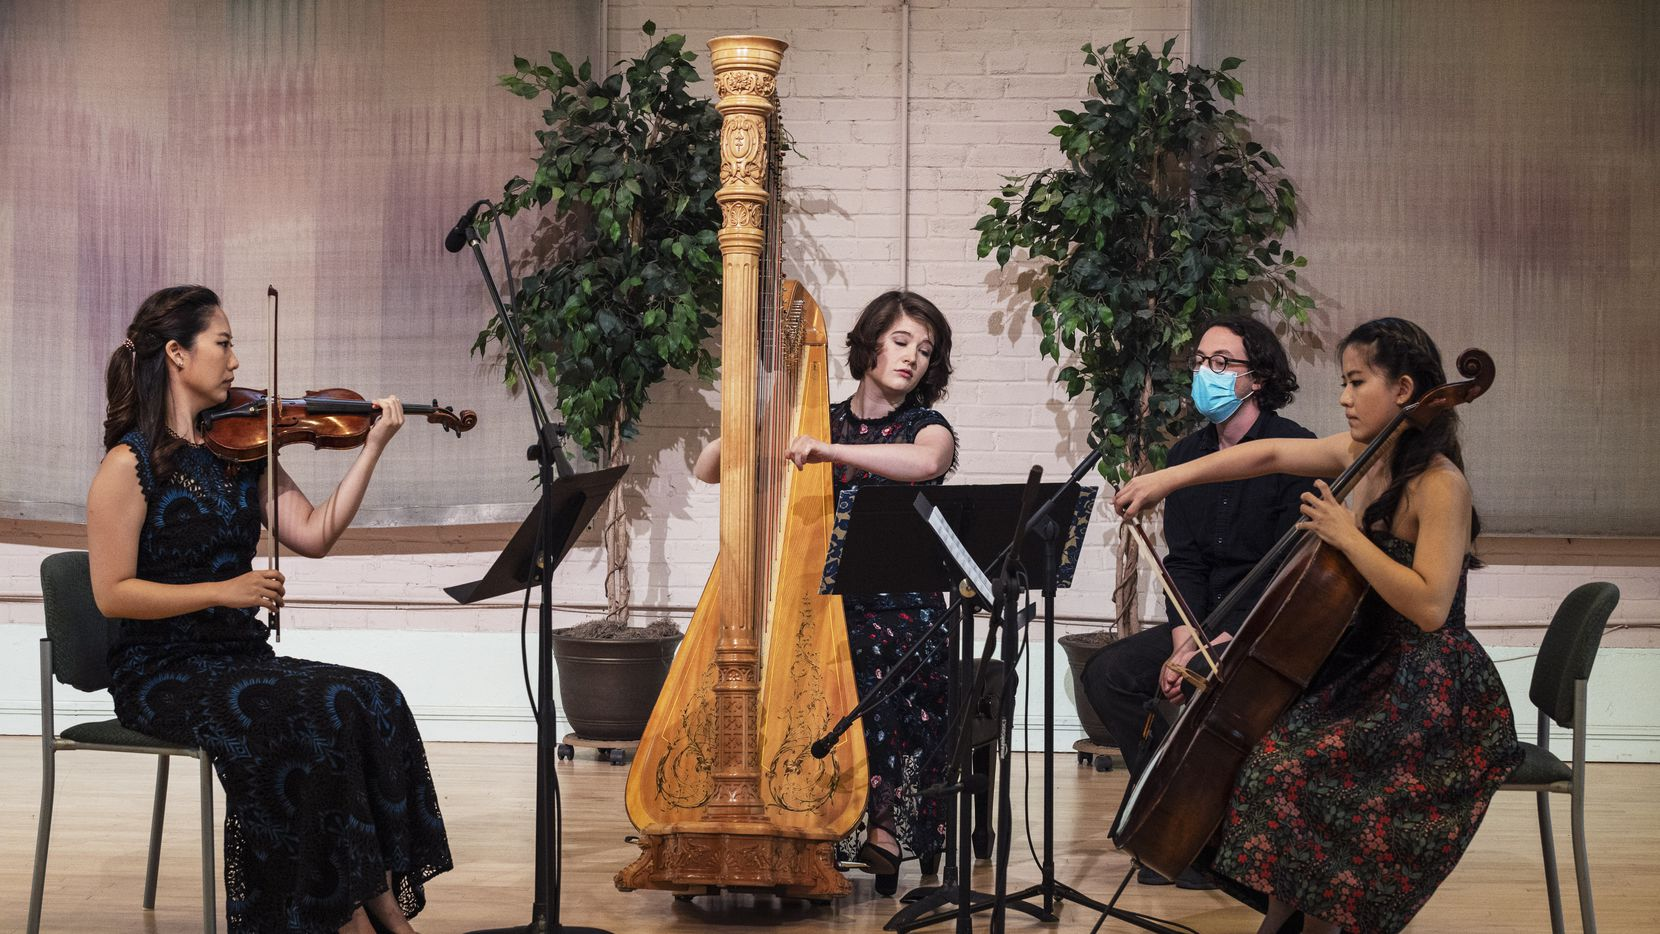 Presented by Fine Arts Chamber Players, violinist Julia Choi, harpist and artistic director Emily Levin, and cellist Jennifer Choi record Henriette Renié's Trio for Harp, Violin and Cello at the Sammons Center for the Arts in Dallas, on April 21.